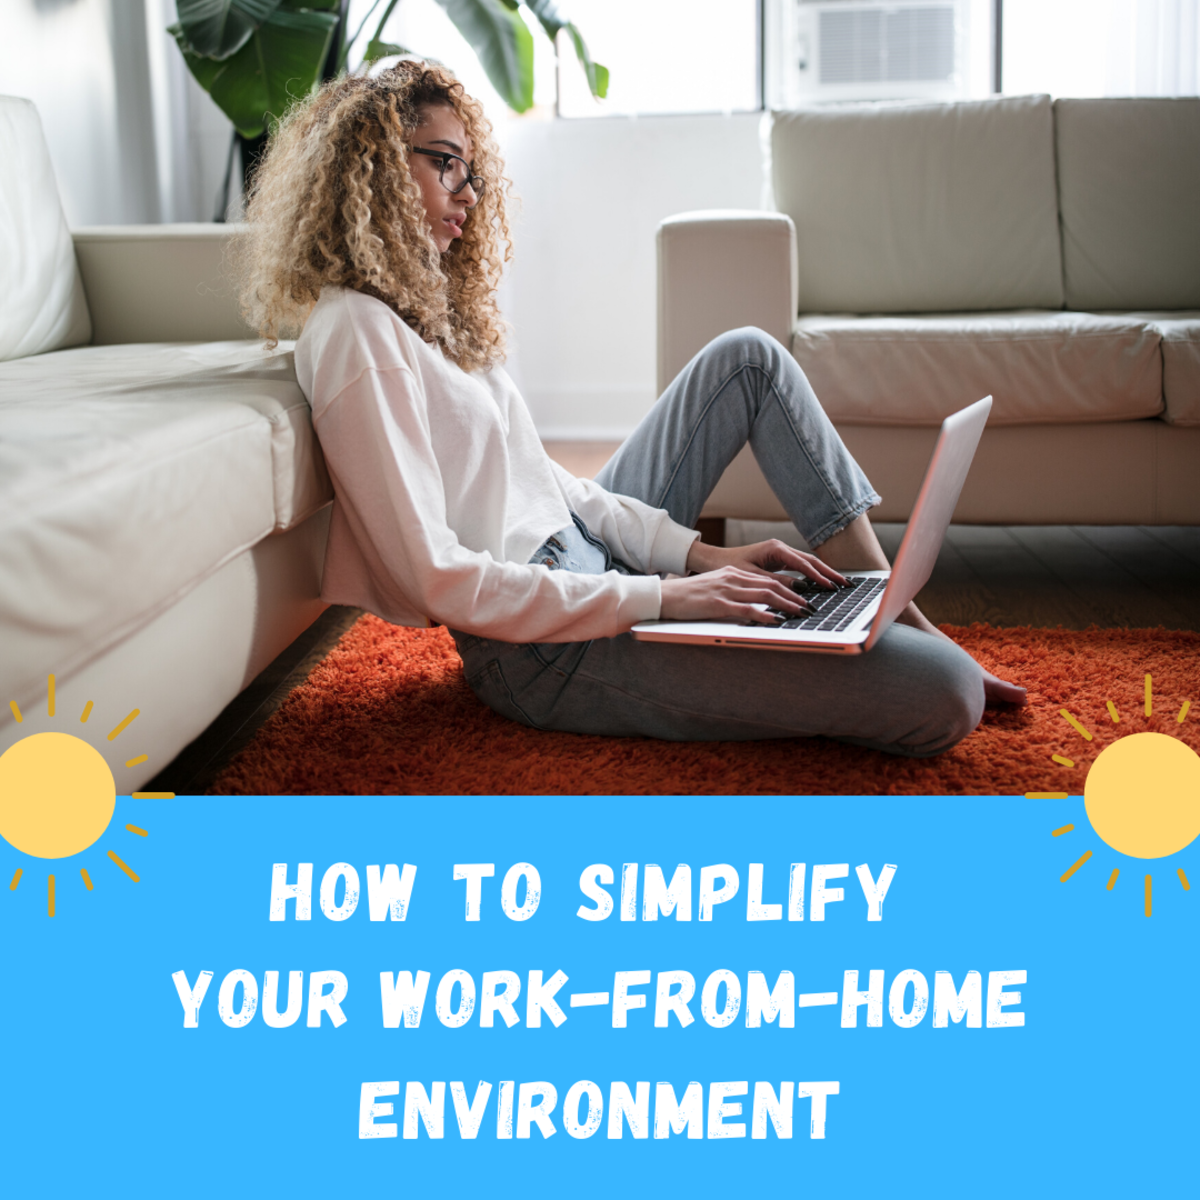 8 Ways to Simplify Your Work-From-Home Environment